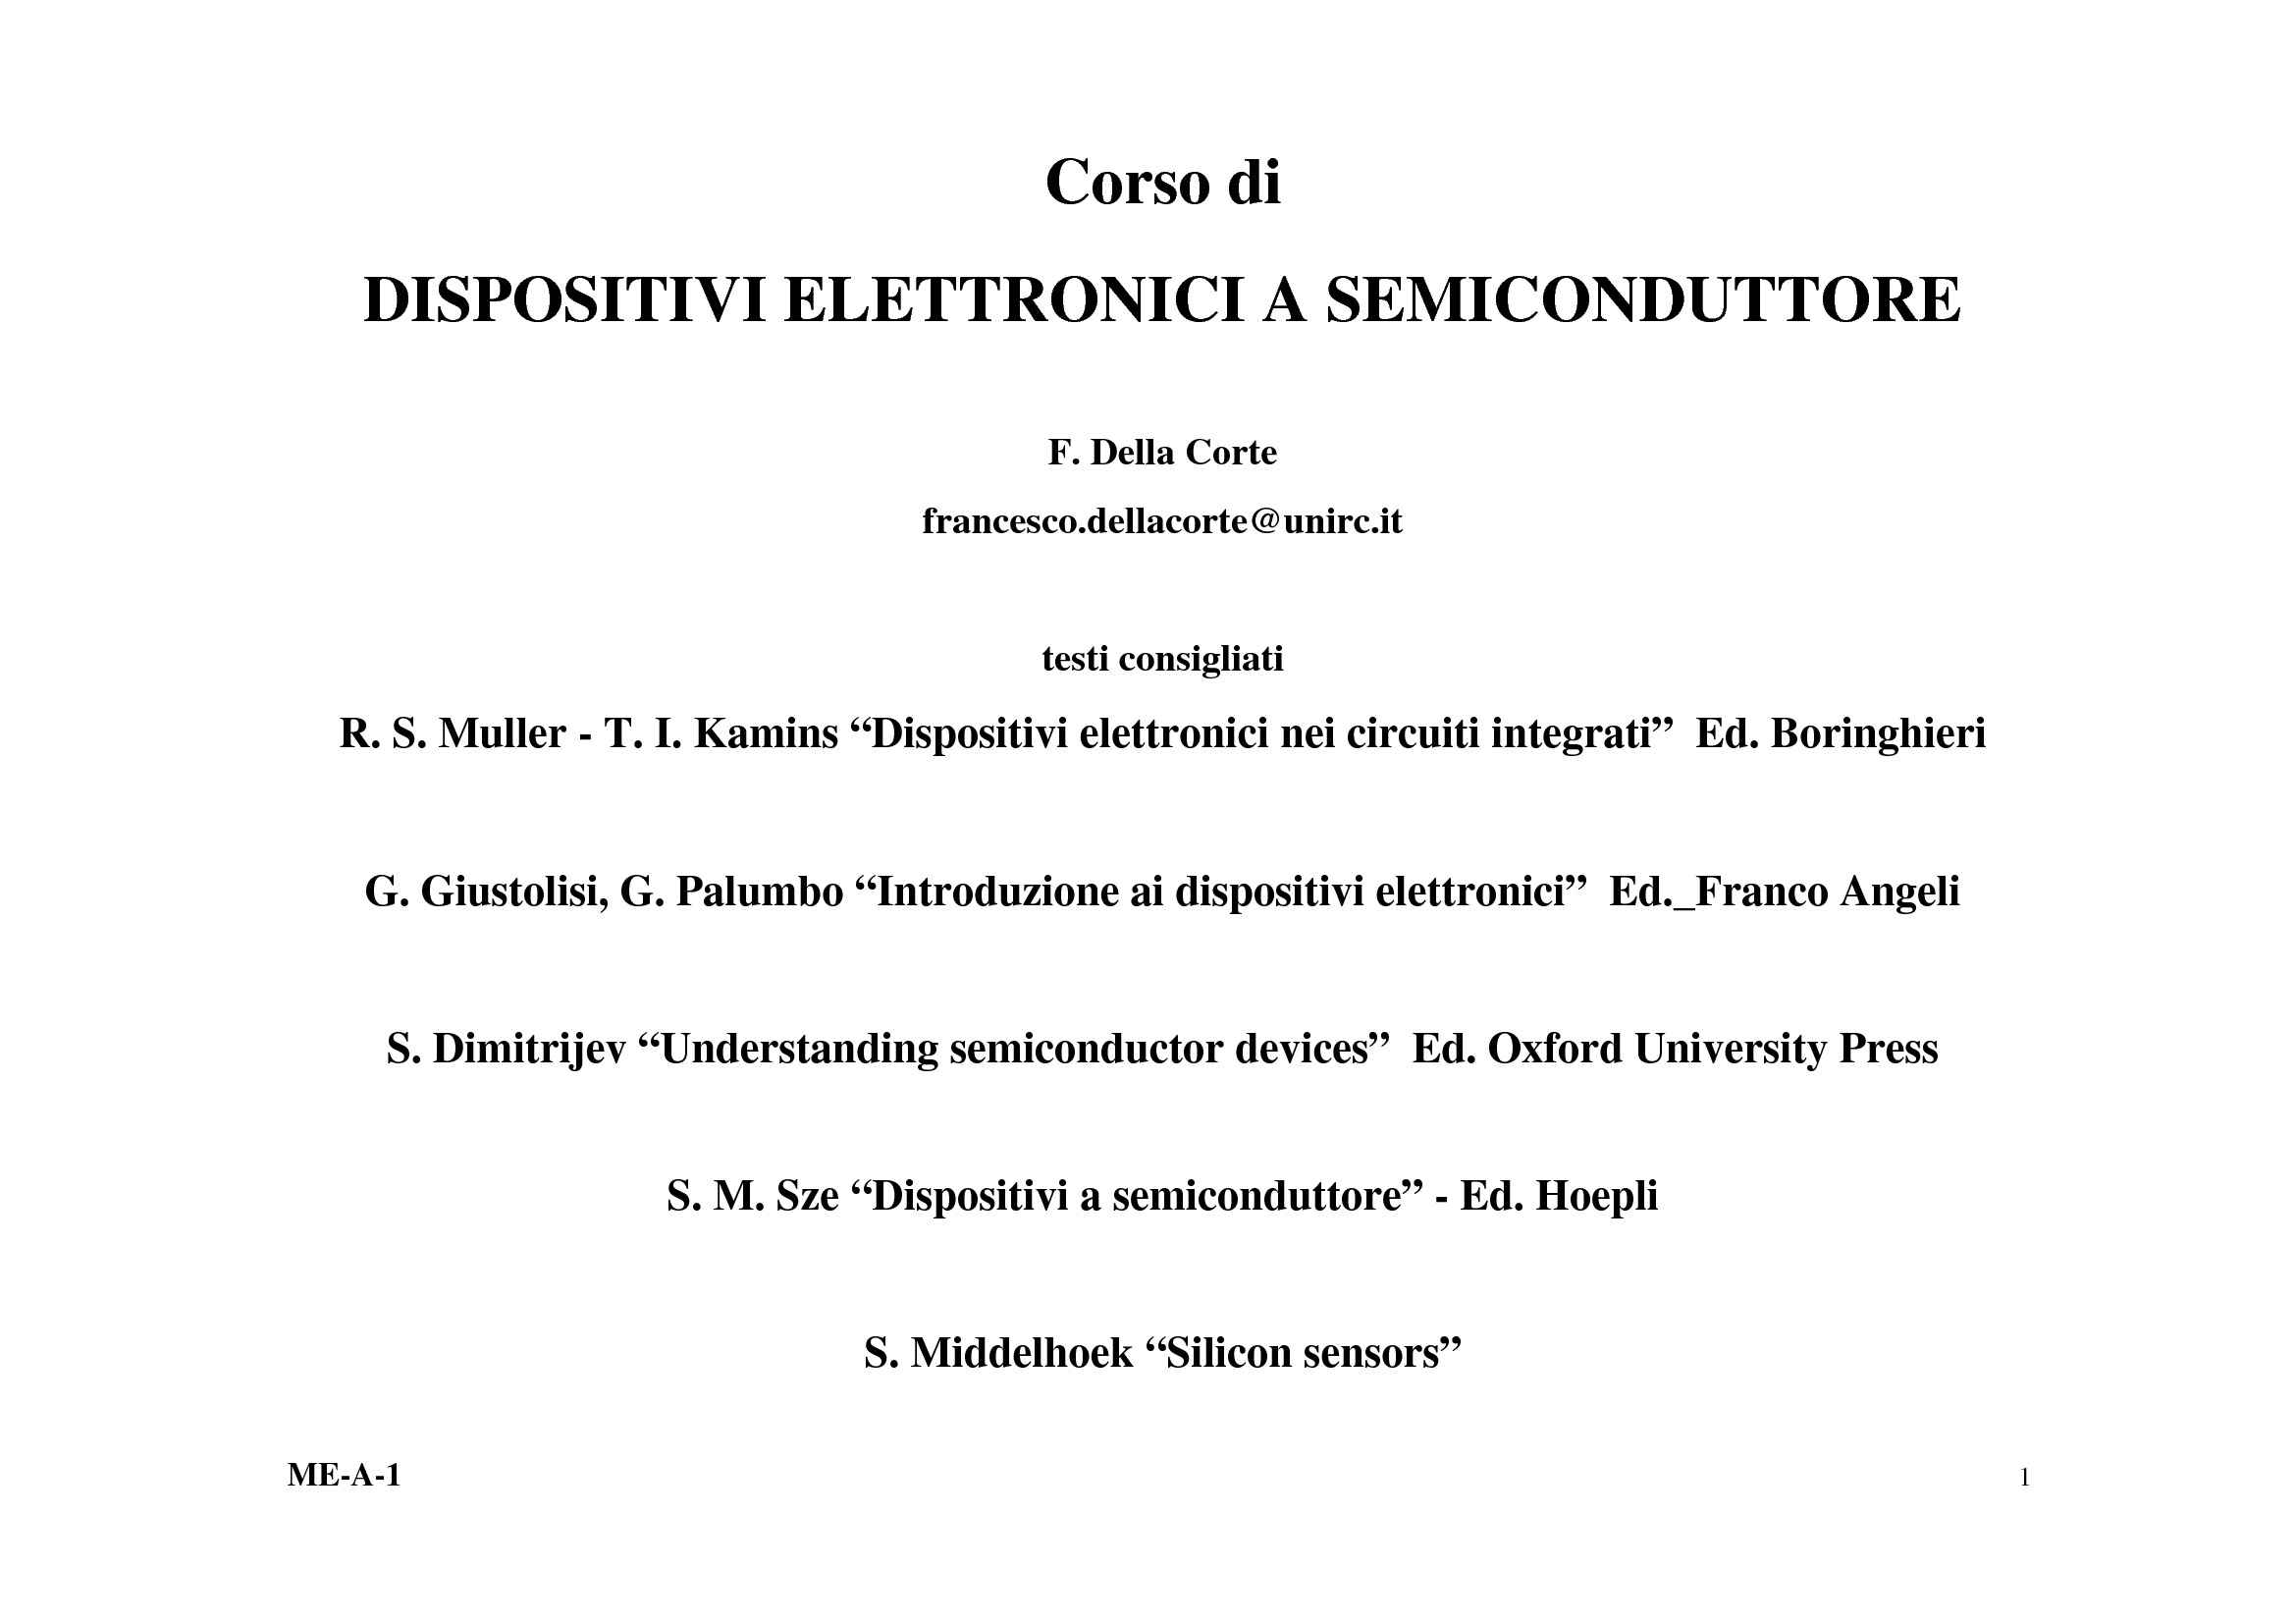 Dispositivi elettronici a semiconduttore